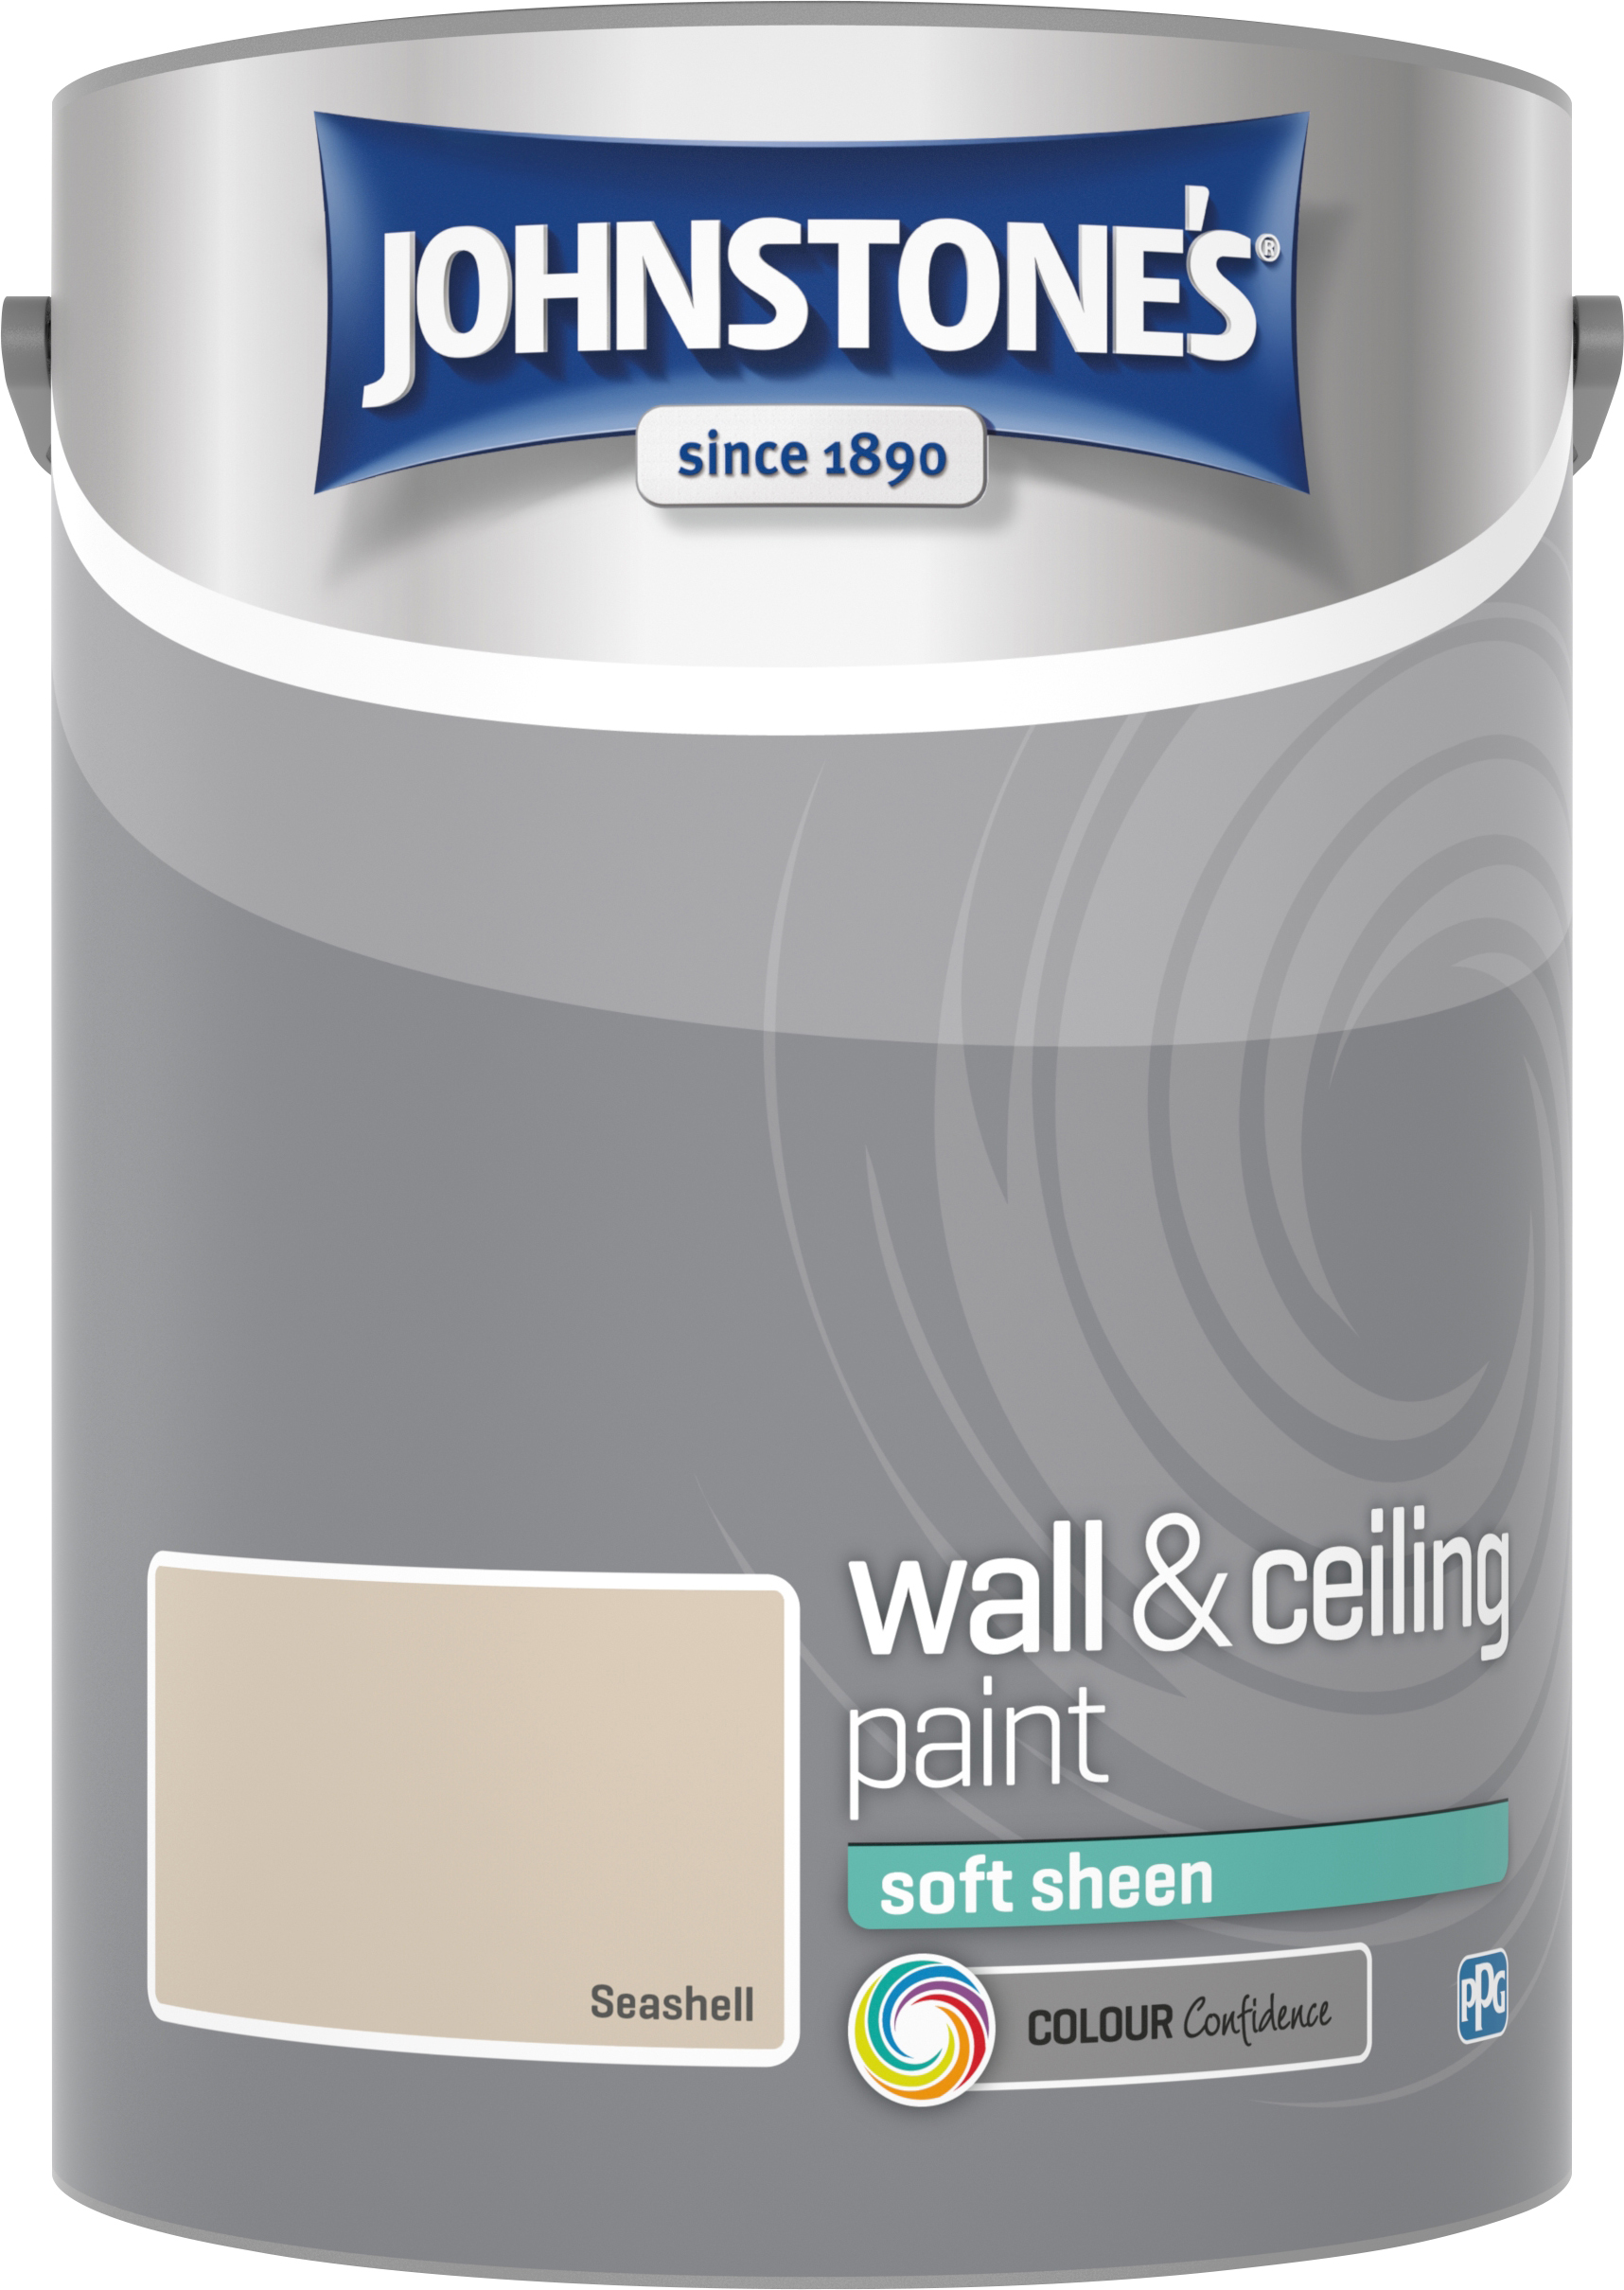 Johnstone's 304192 5 Litre Soft Sheen Emulsion Paint - Seashell